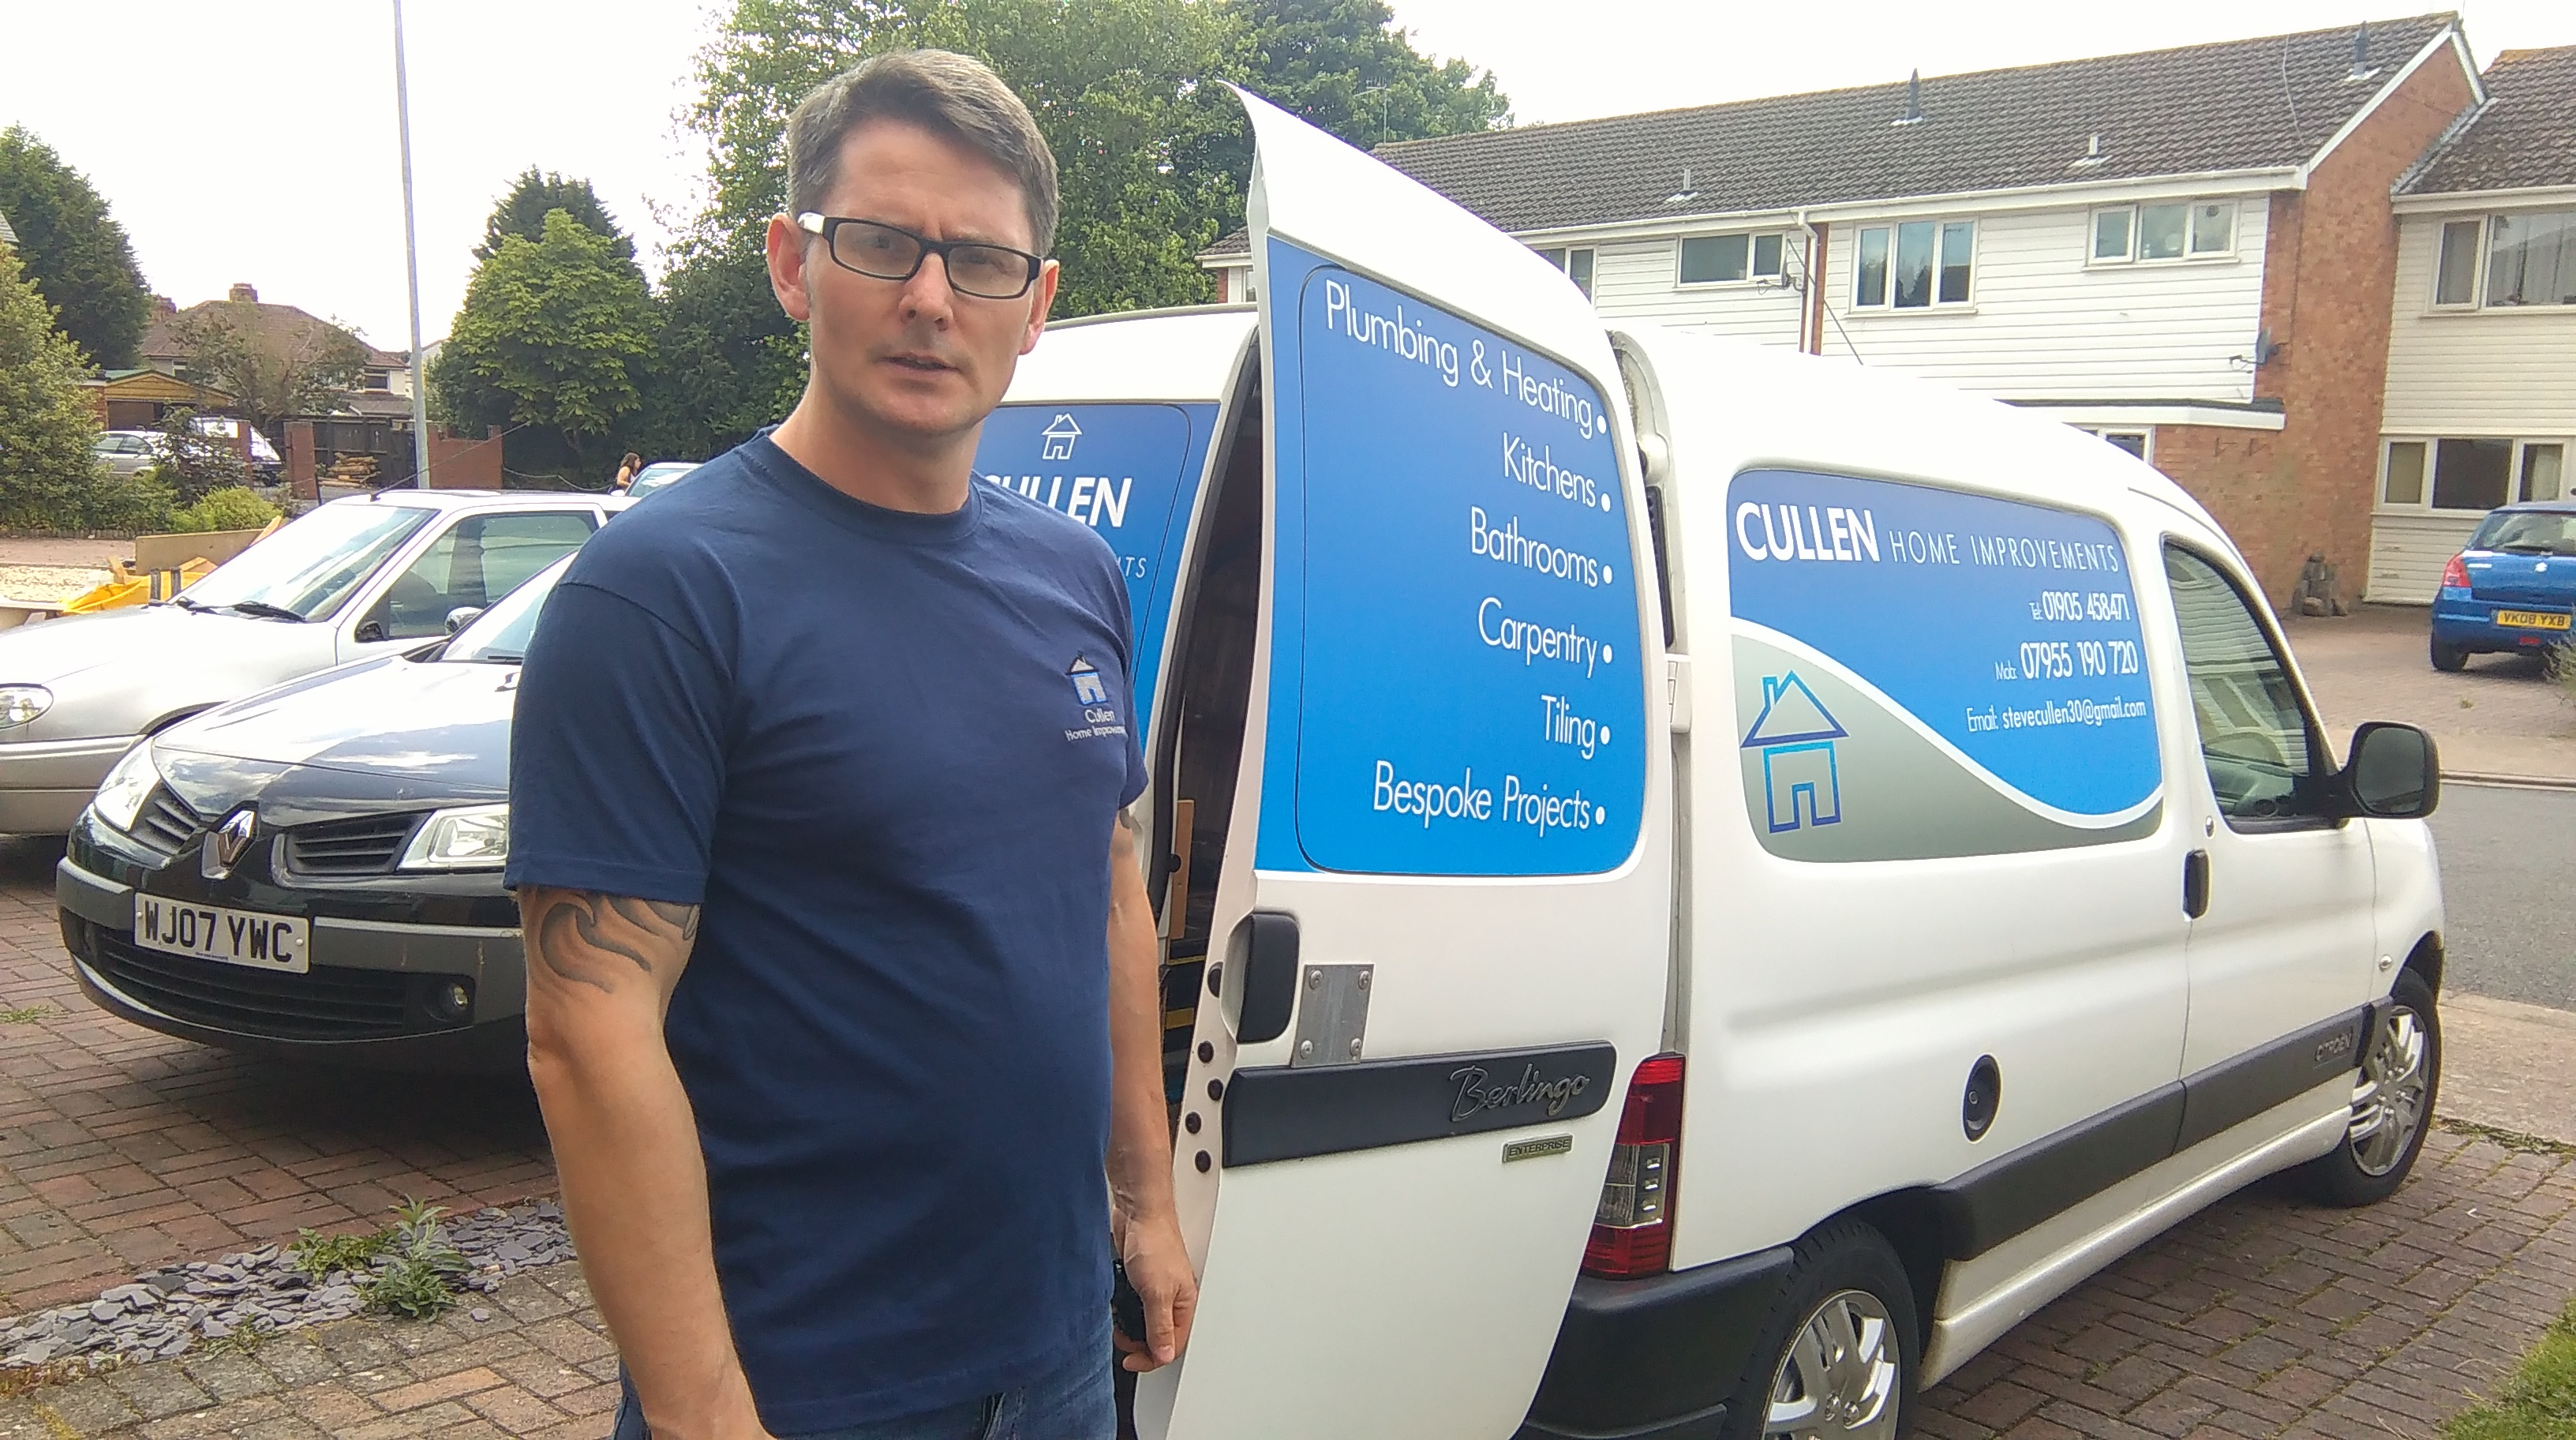 Cullen Home Improvements